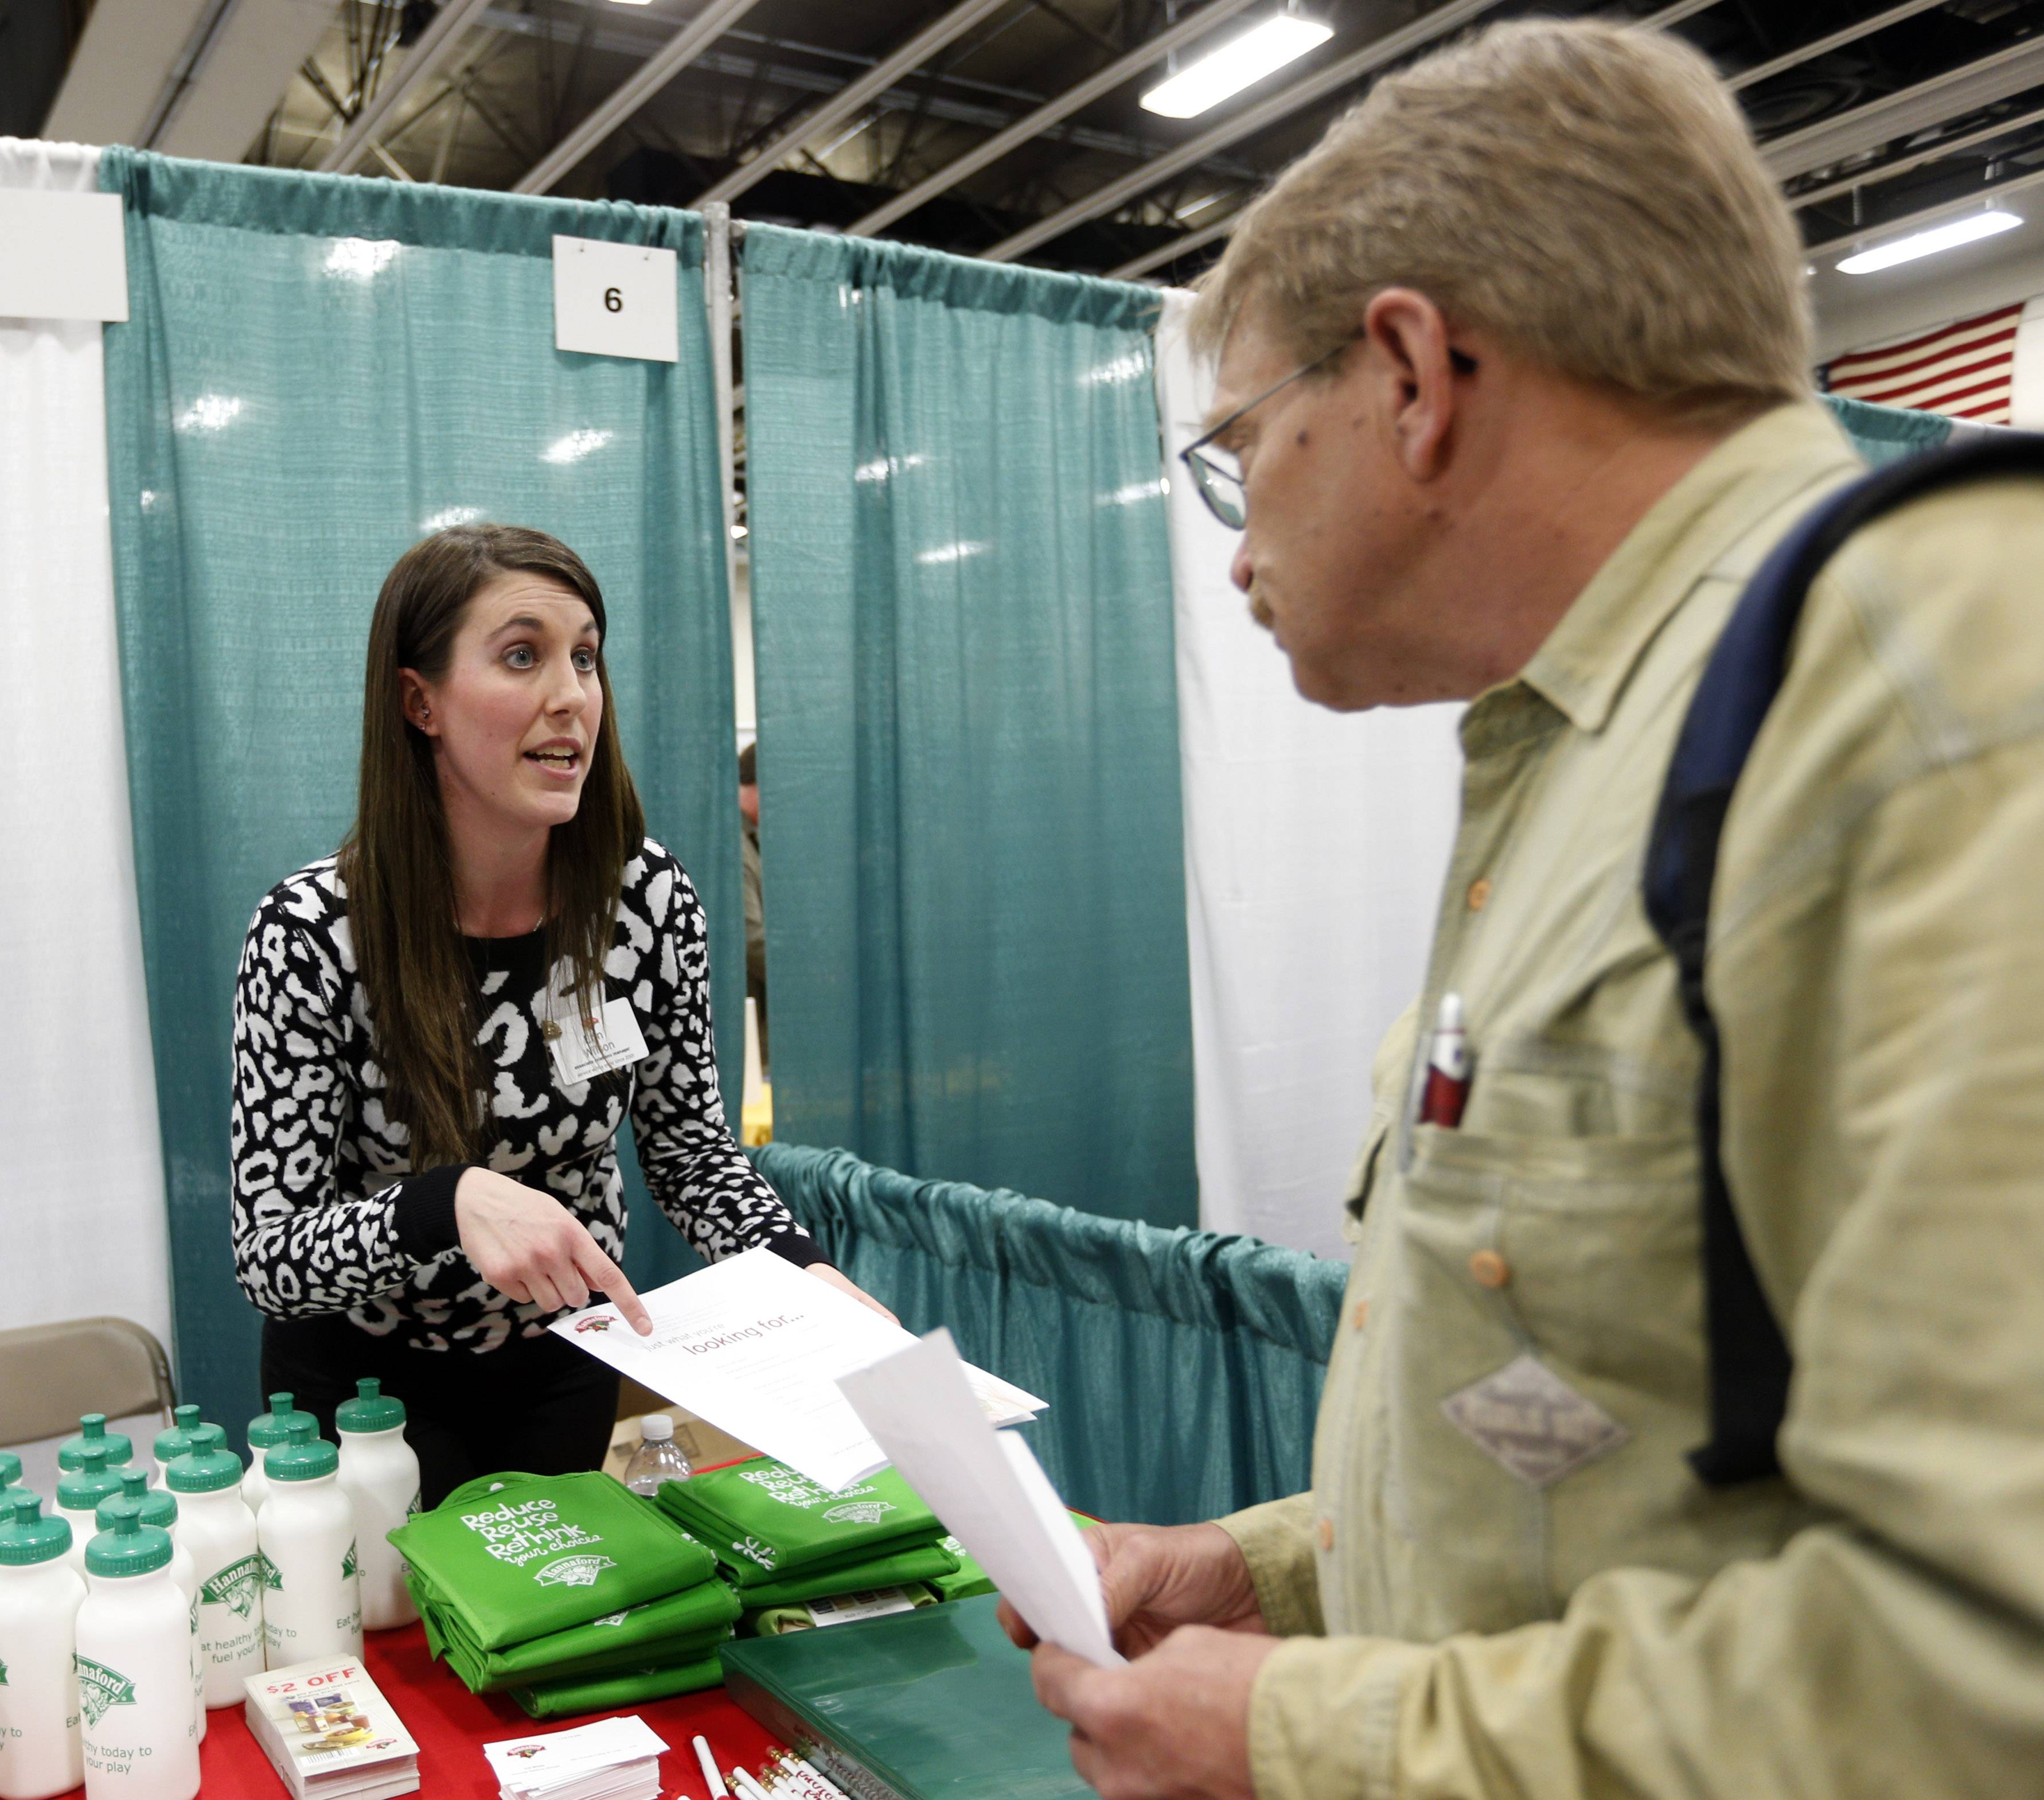 Erin Wilson, of Hannaford Bros. supermarket company, left, talks with a job seeker during a job fair Columbia-Greene Community College in Hudson, N.Y.